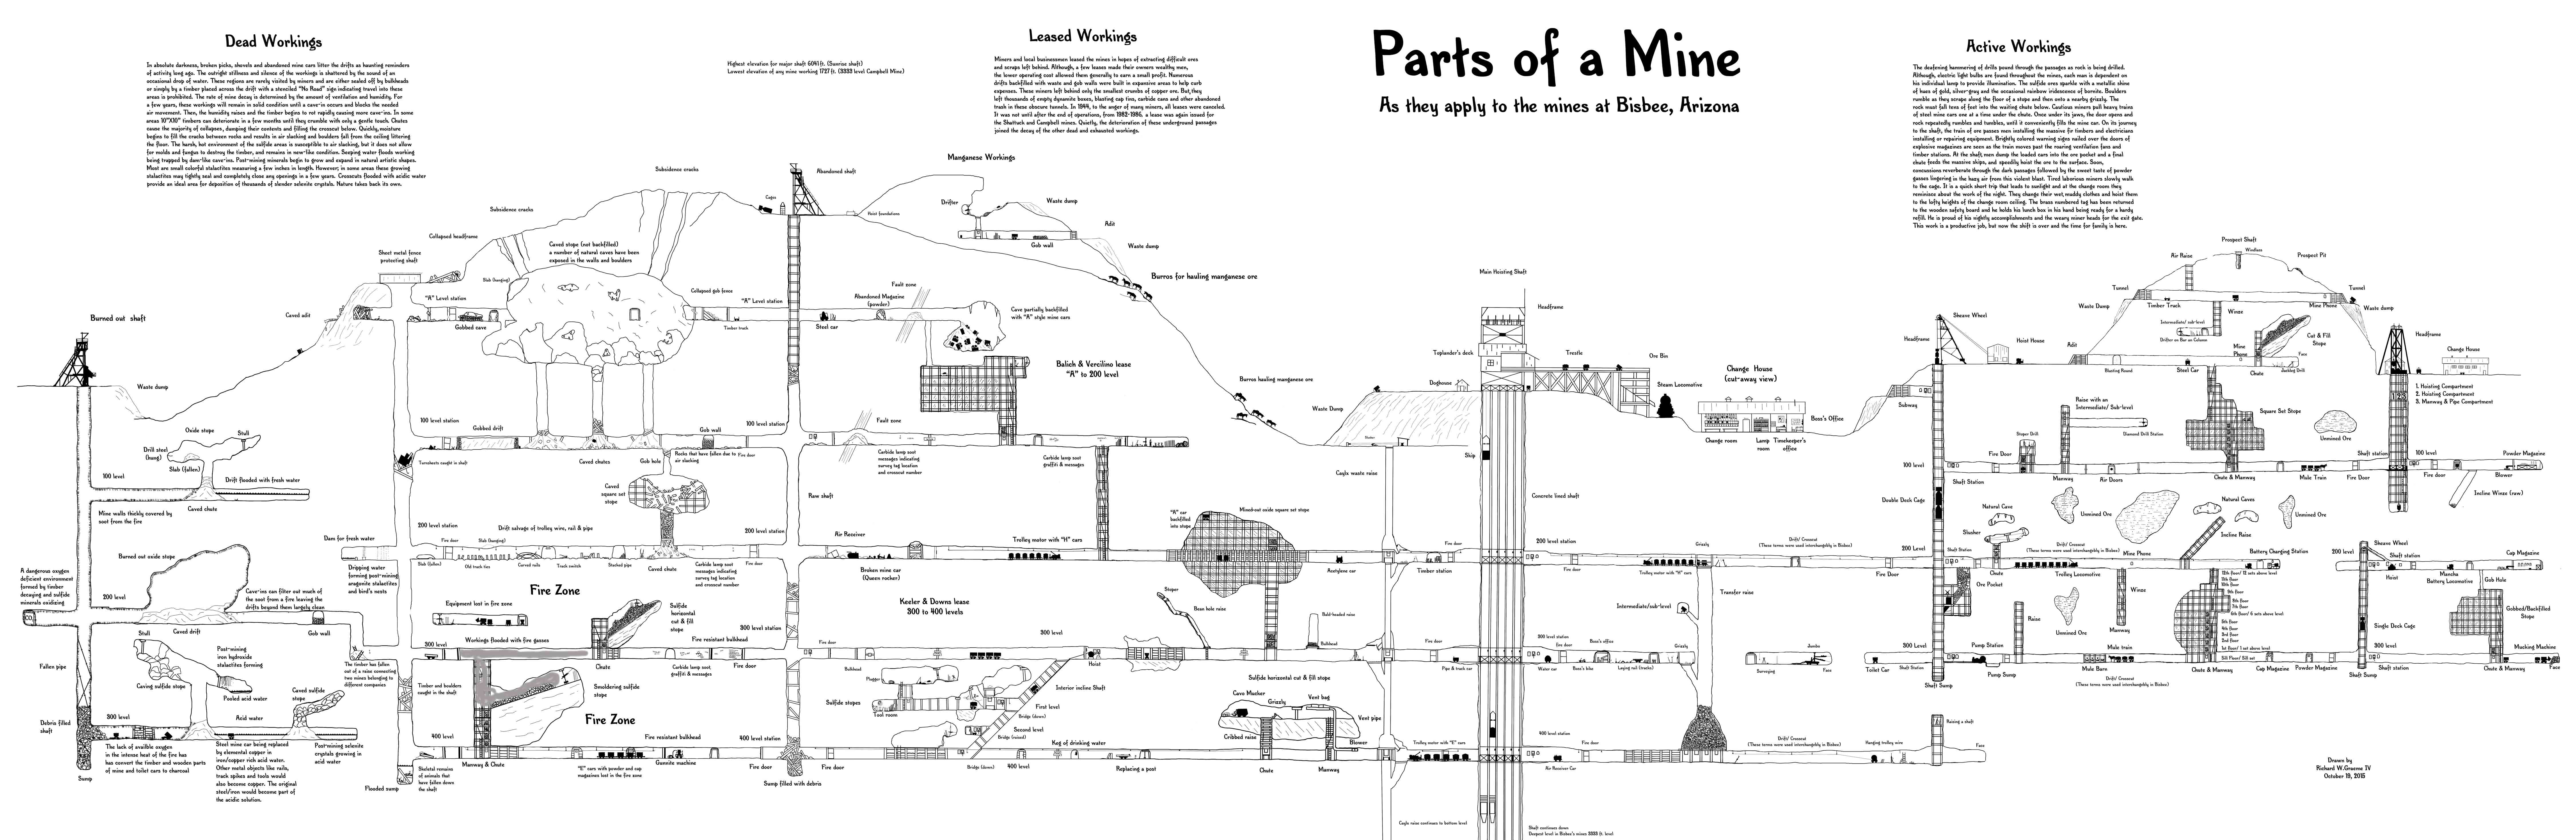 This diagram shows helps reveal meaning of mining terminology as it ...